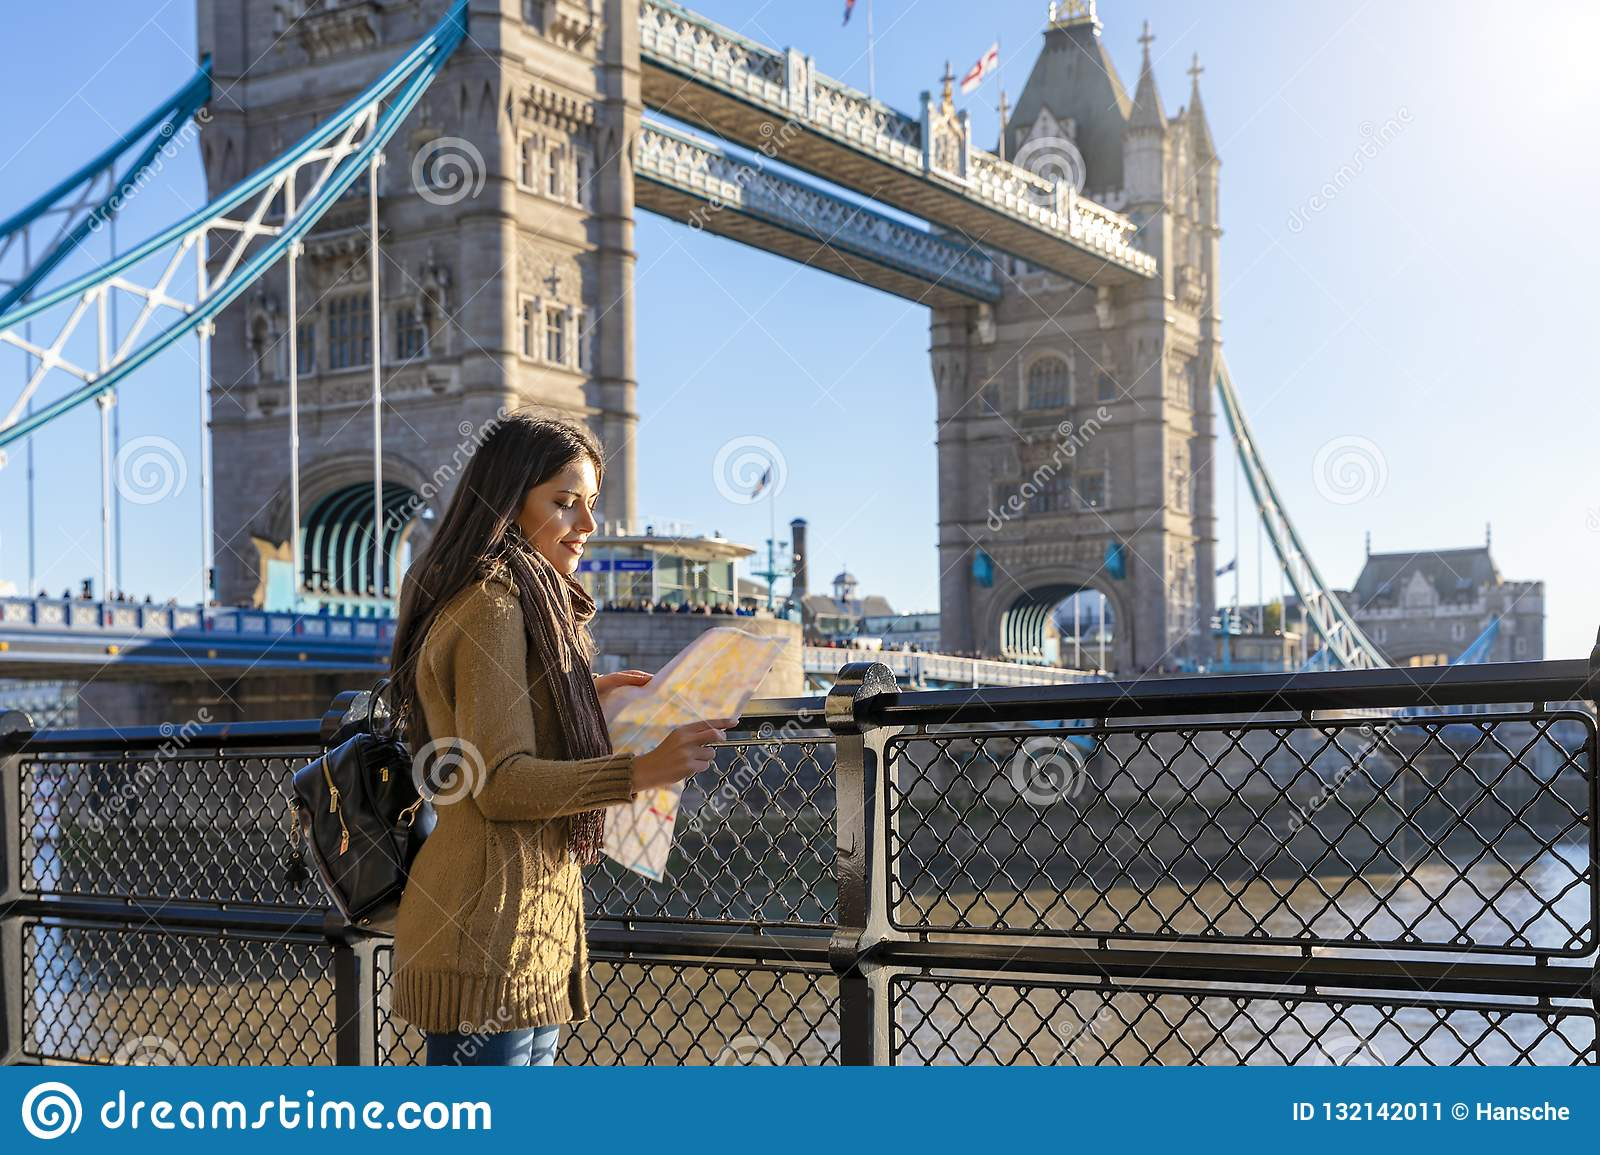 Urban city tourist concept in front of Tower Bridge in London,UK